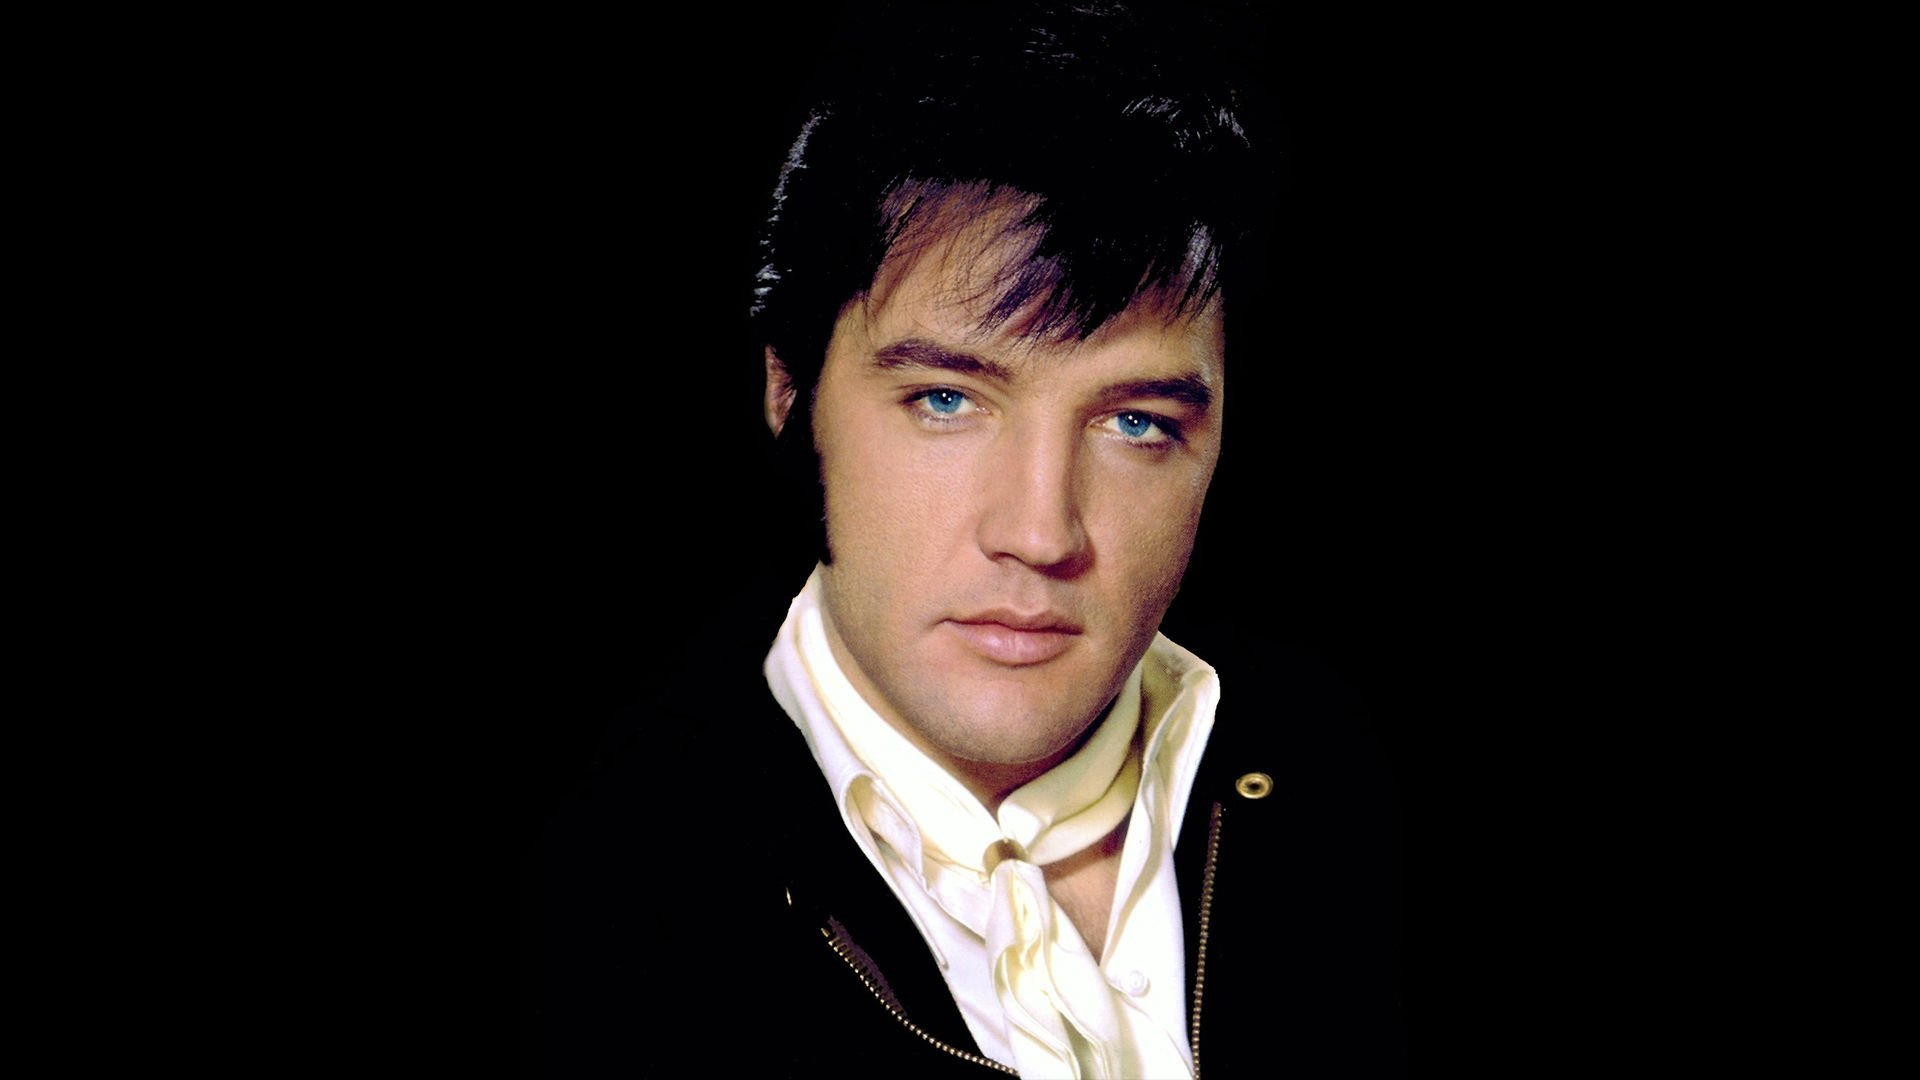 Elvis Presley Desktop Wallpapers 44 Wallpapers HD Wallpapers Download Free Images Wallpaper [1000image.com]